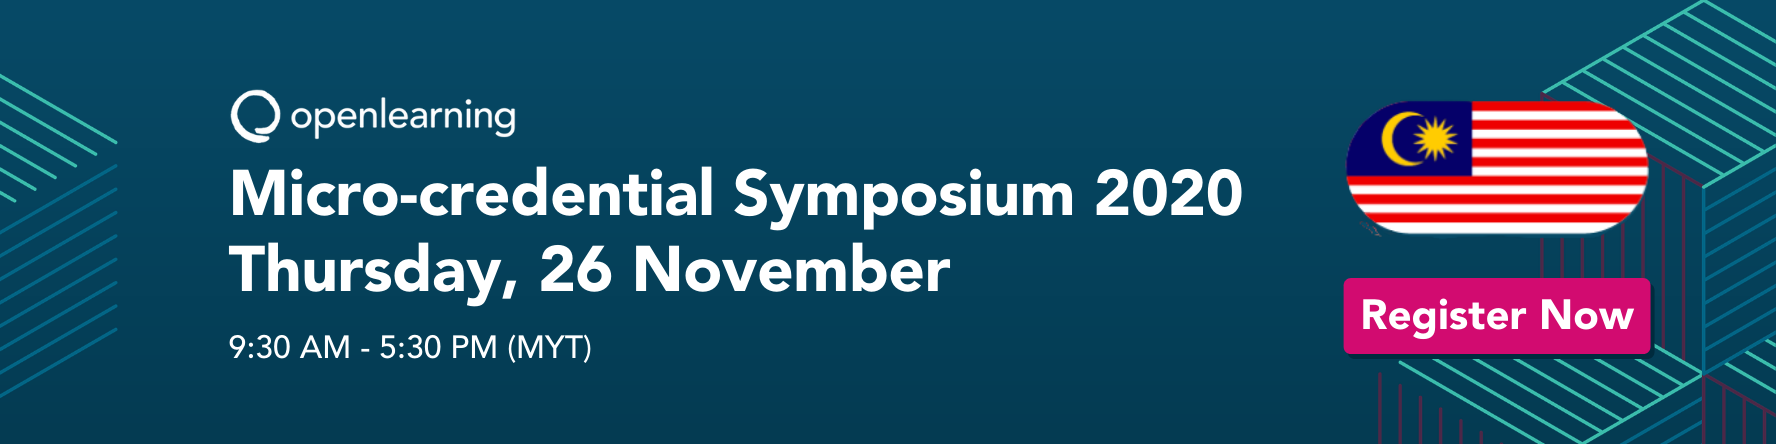 OpenLearning Micro-credential Symposium 2020 Thursday 26 November - Malaysia